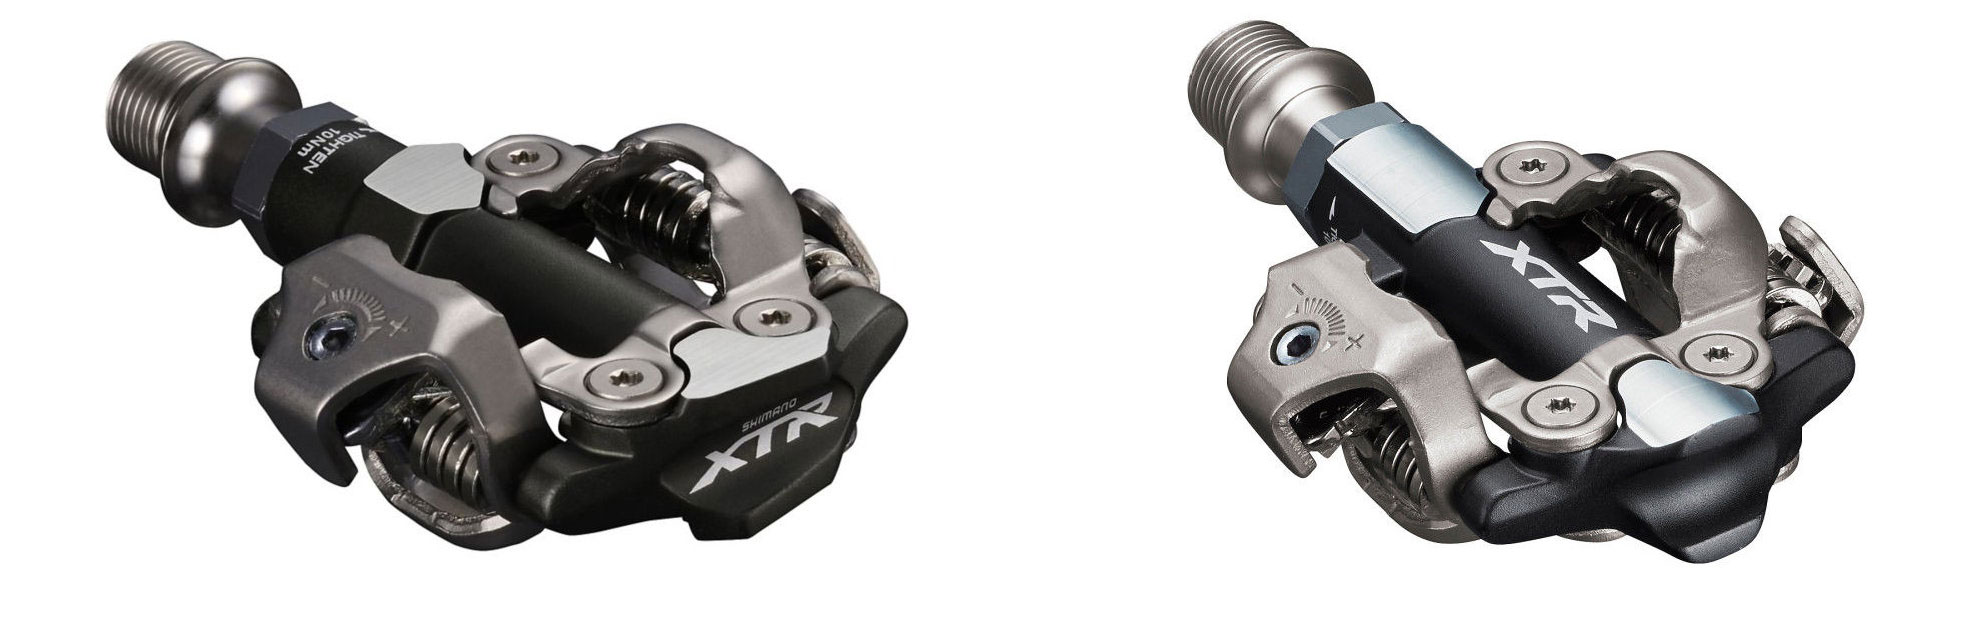 Pedales Shimano XTR PD-M9100